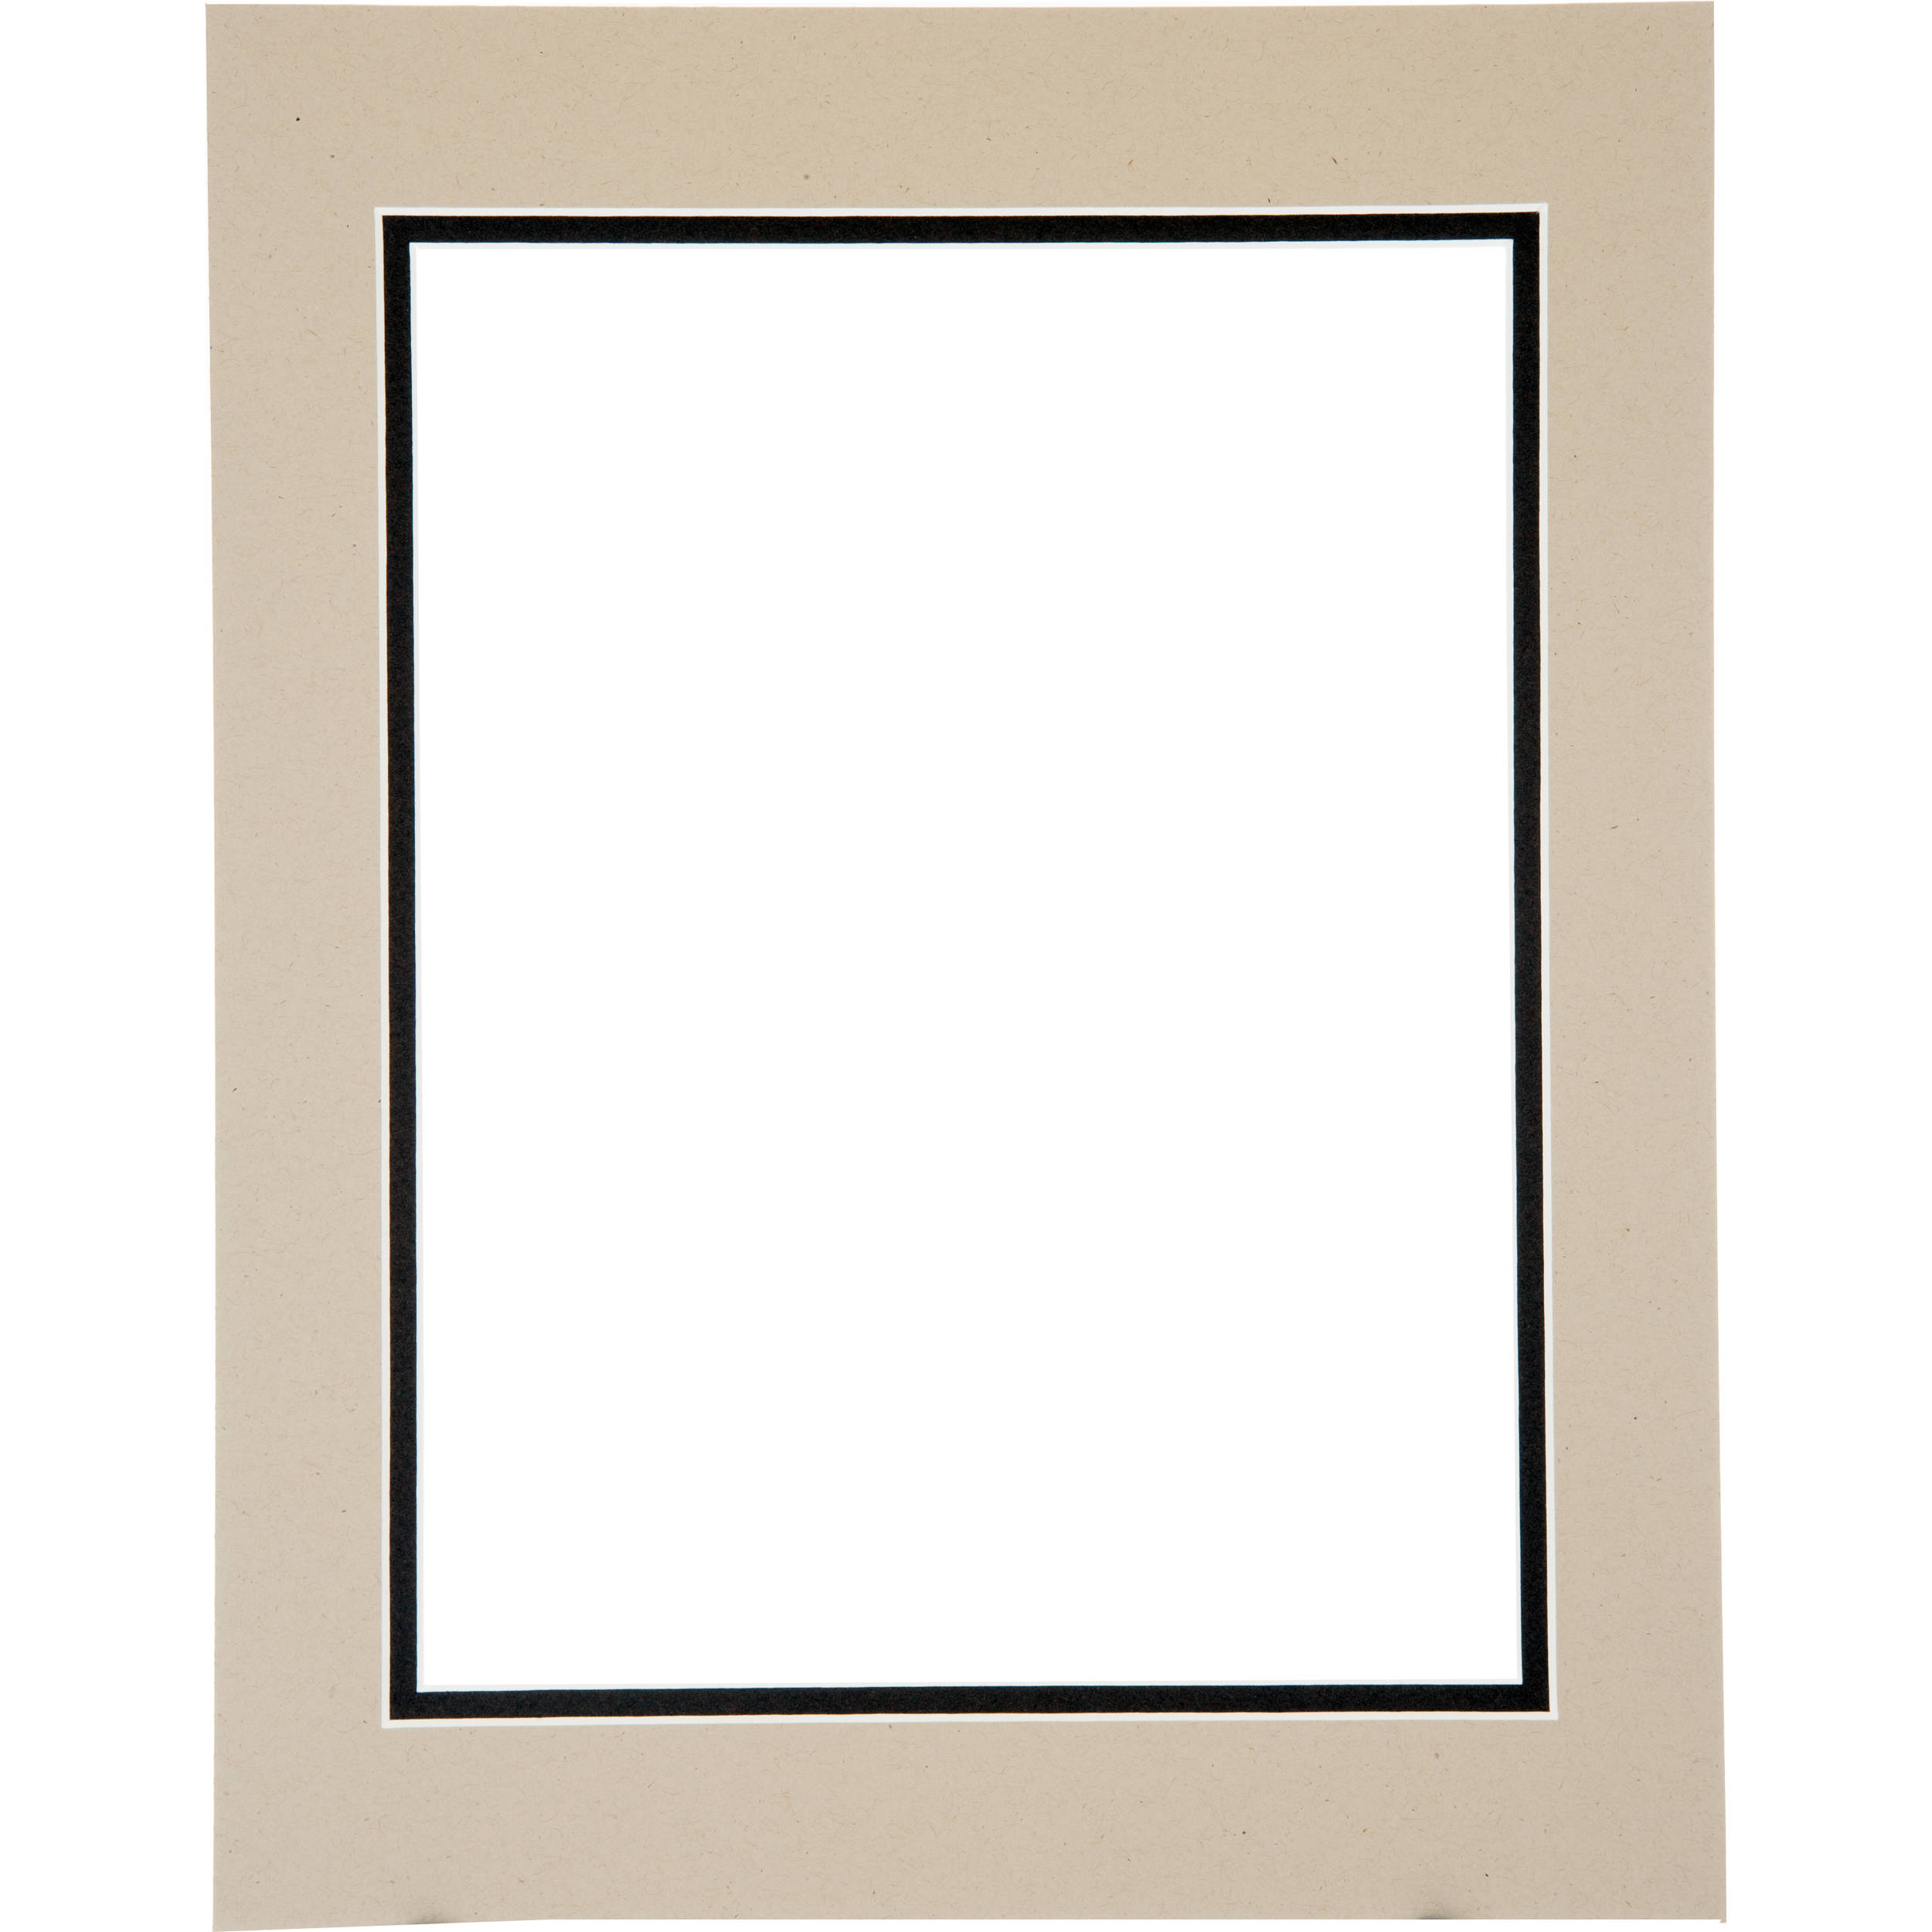 Logan Graphics 11 X 14 Quot Double Mat Frame With 8 5 M6033 49